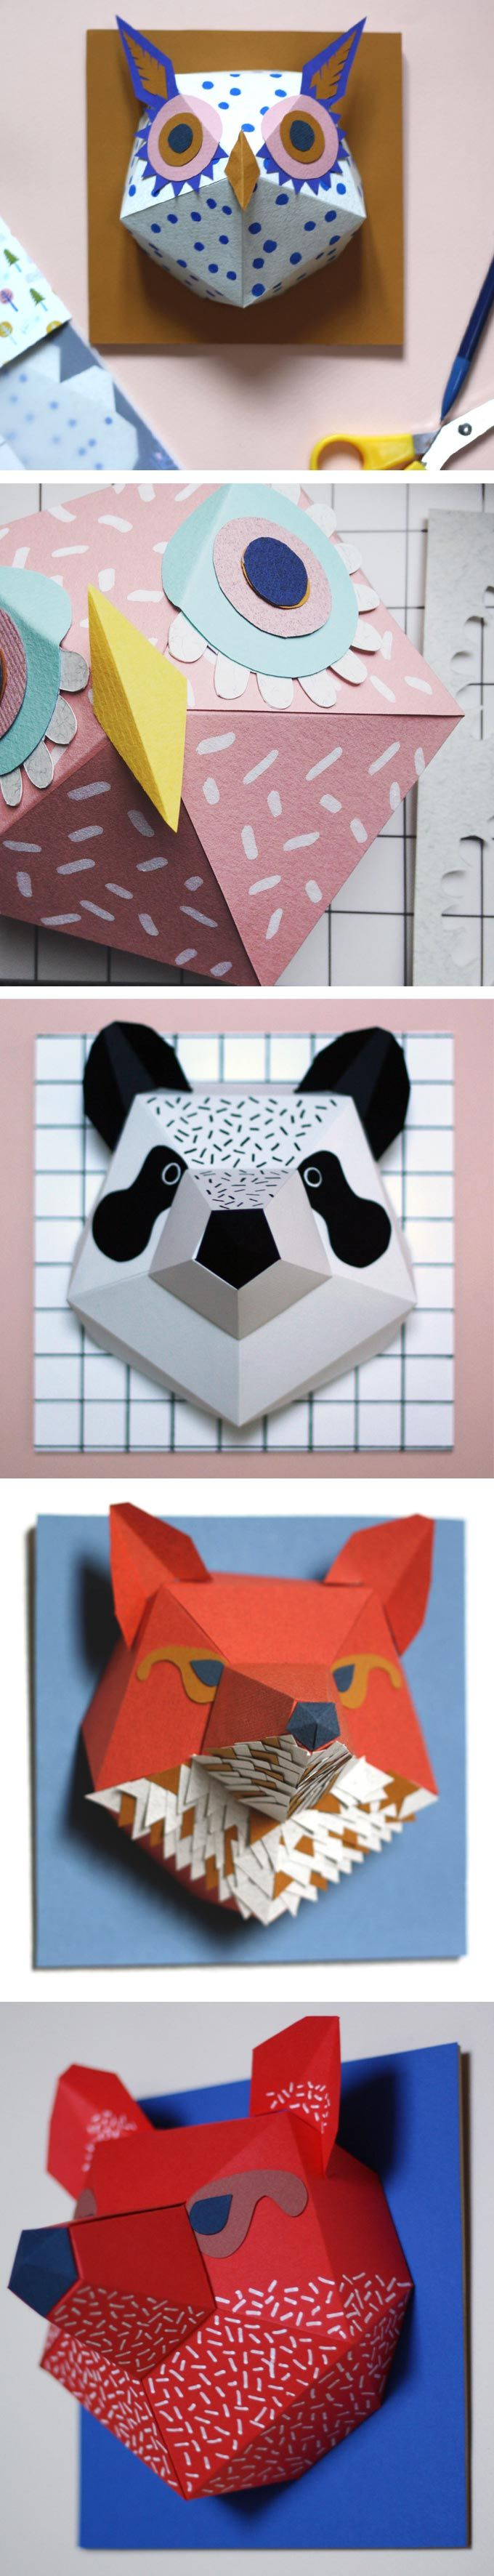 Mlle Hipolyte has recently opened an Etsy shop where she sells her handmade creations. There, you can purchase hang able busts of pandas, bears, and more.